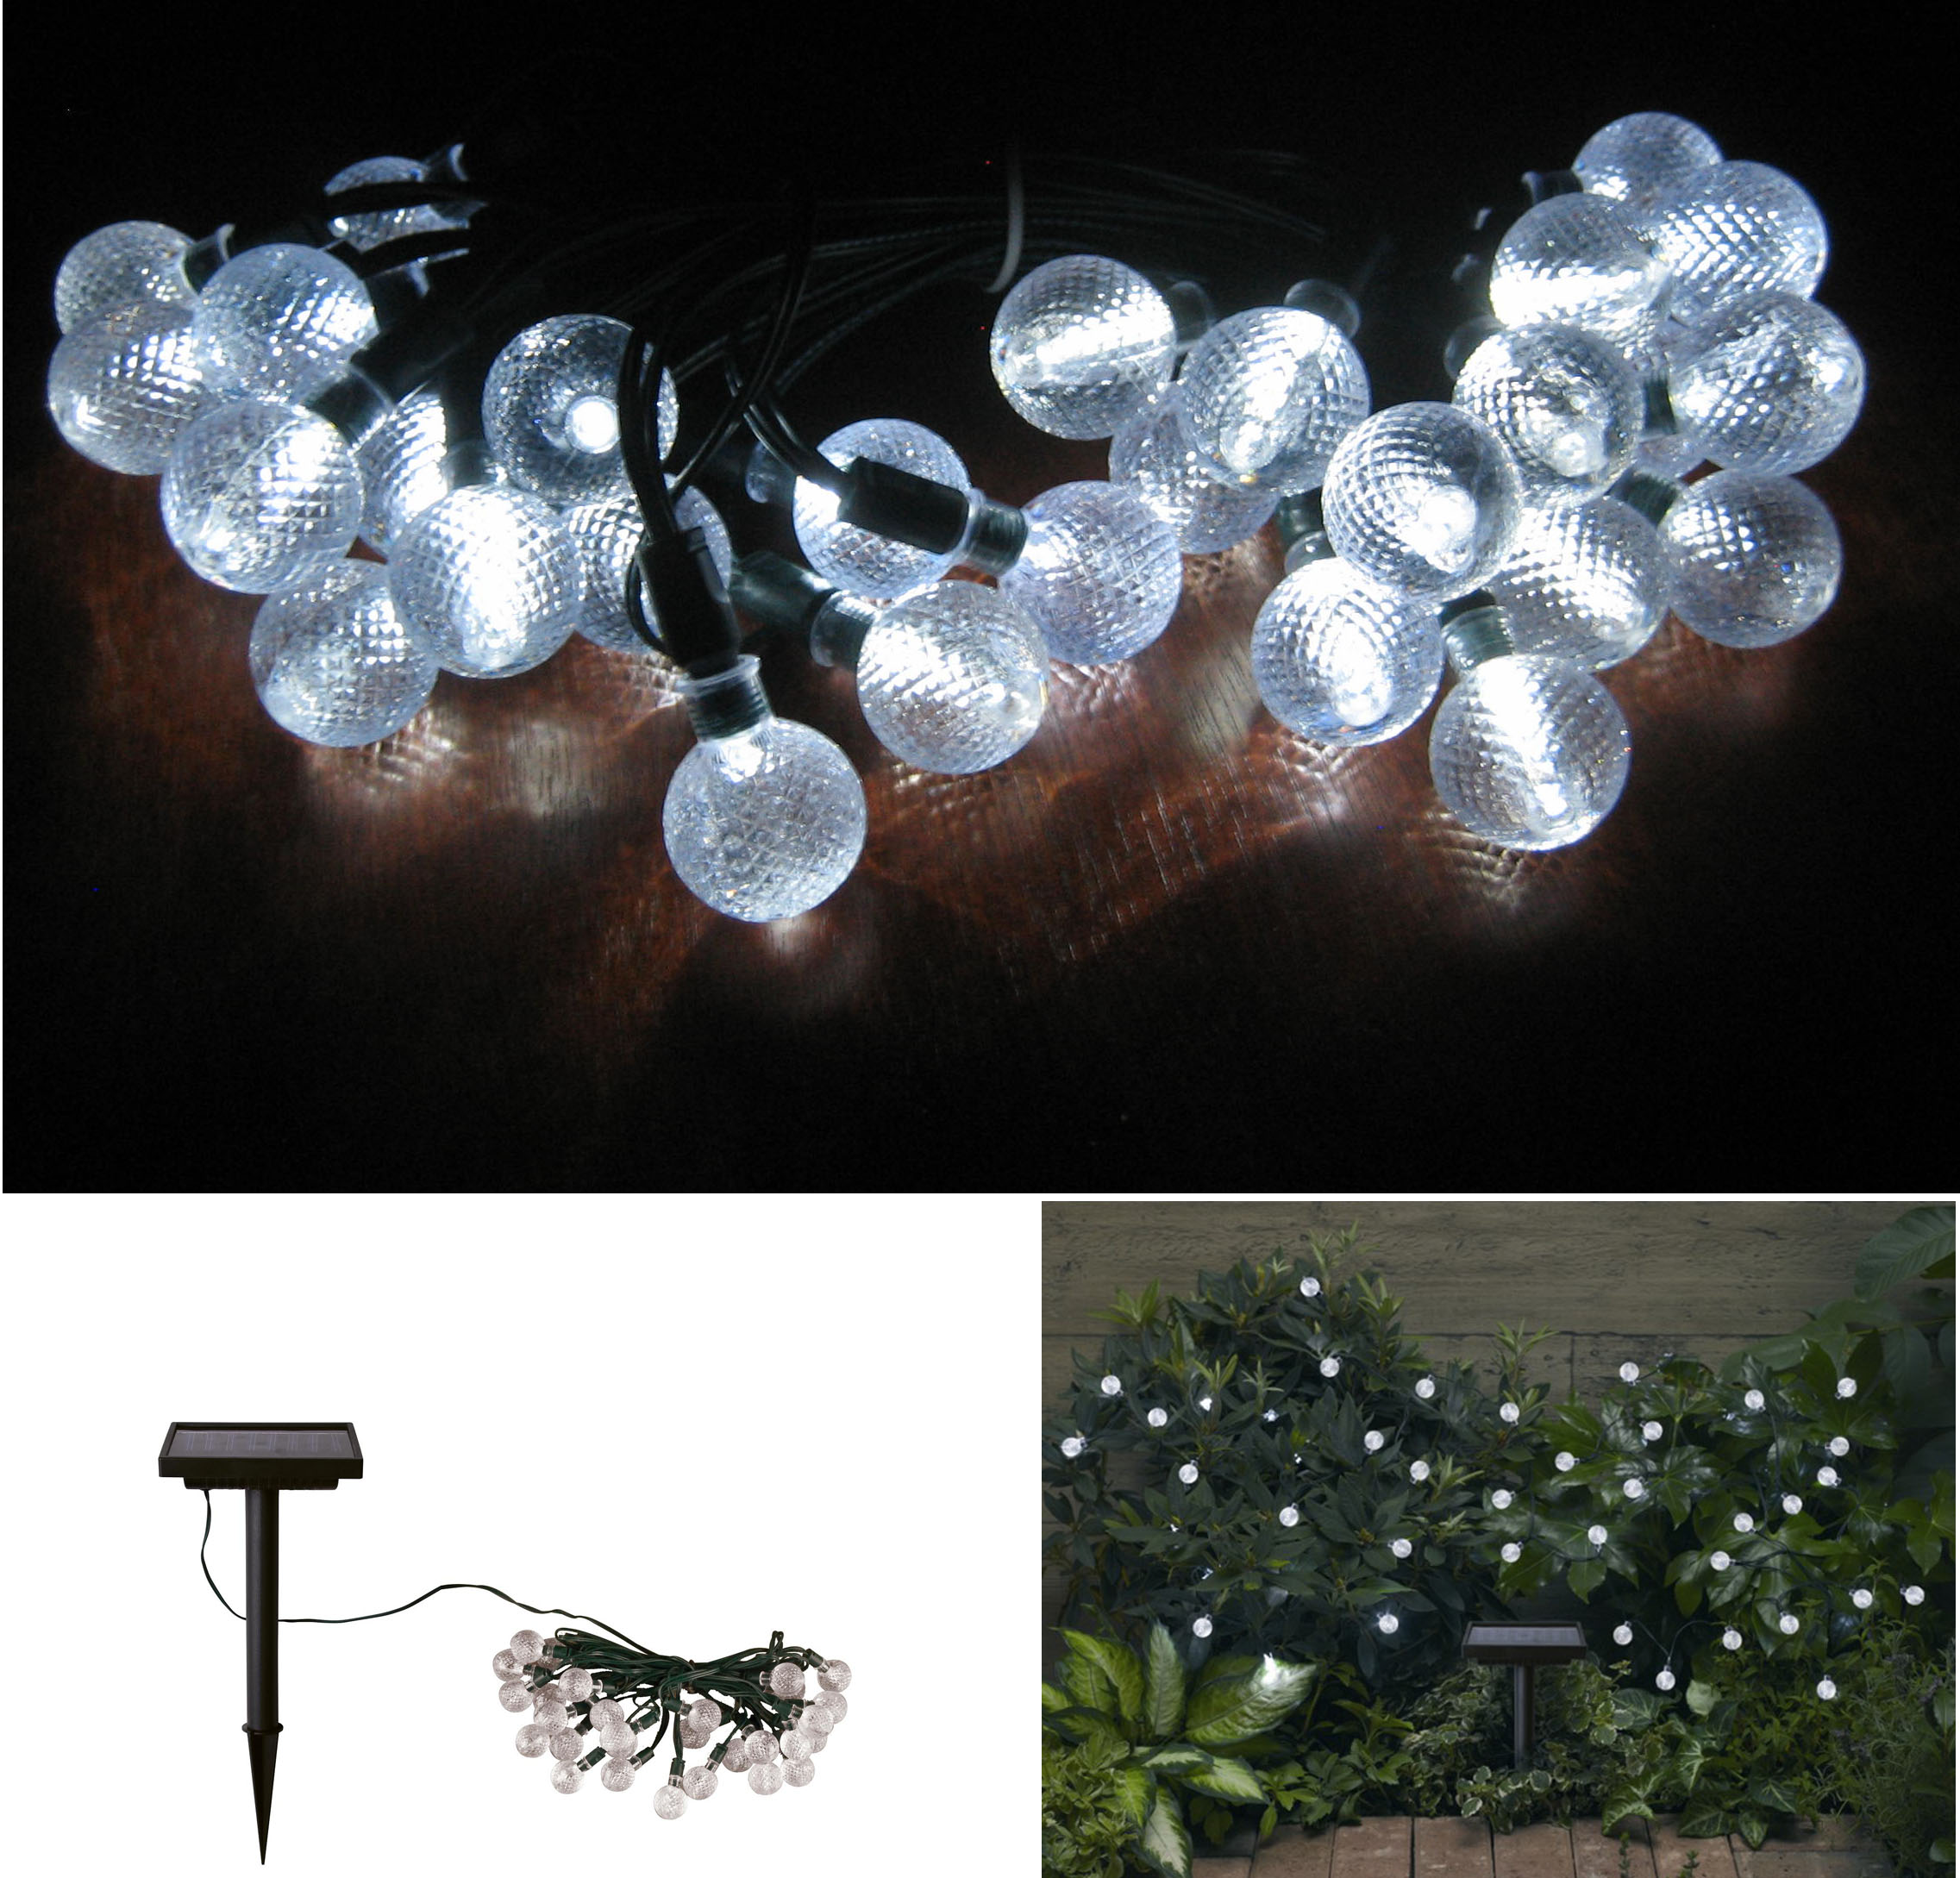 Solar Crystal Balls Light Strings 30 Count With White Led's And NIMH Battery